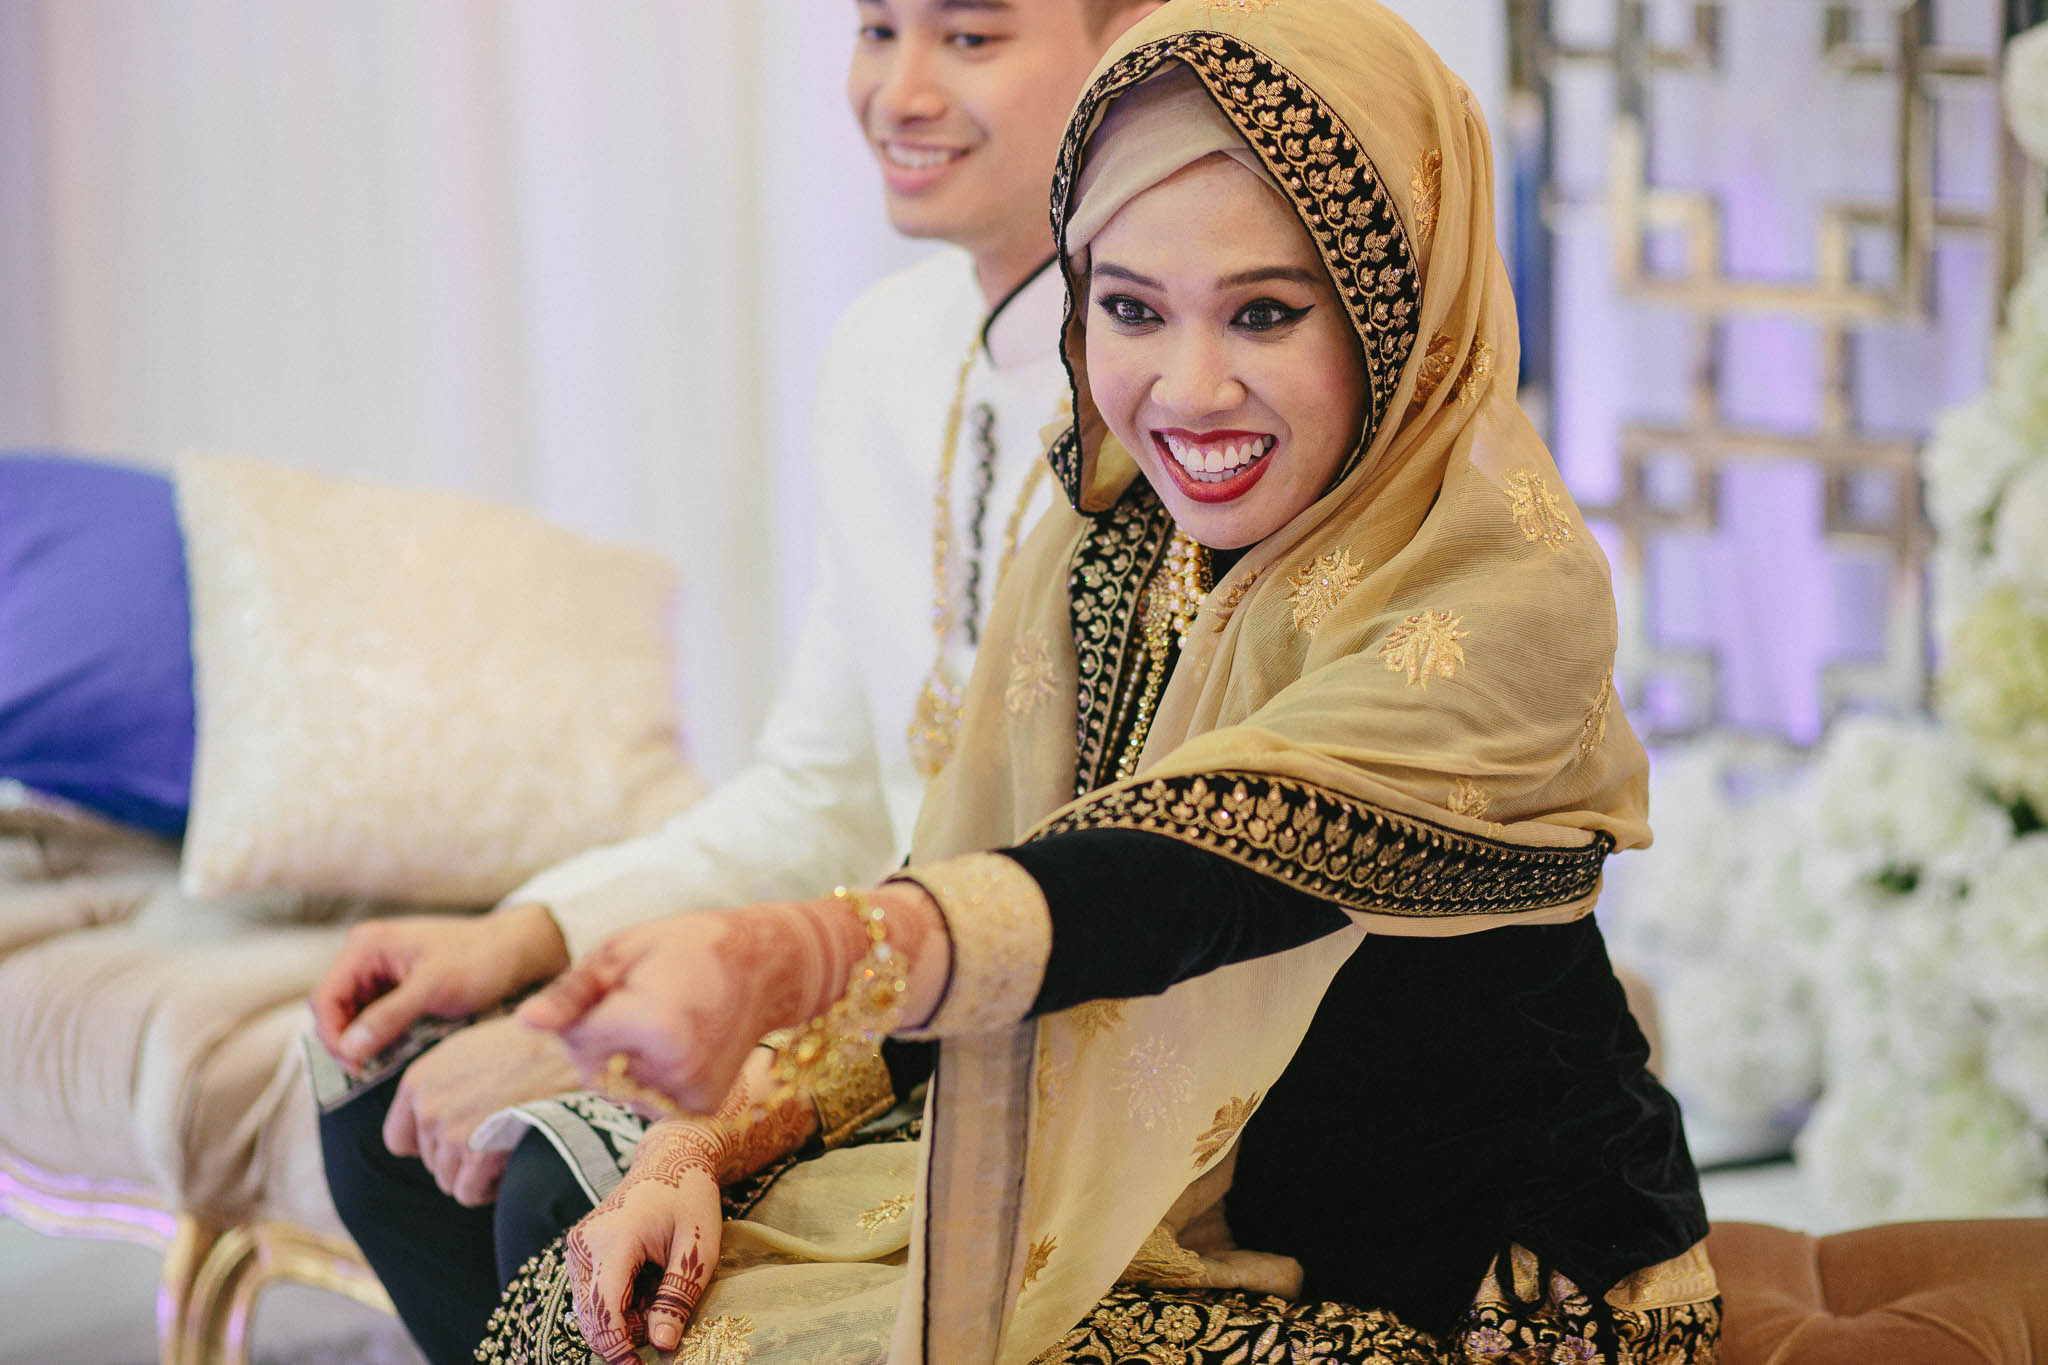 singapore-wedding-photographer-mega-asyraf-63.jpg